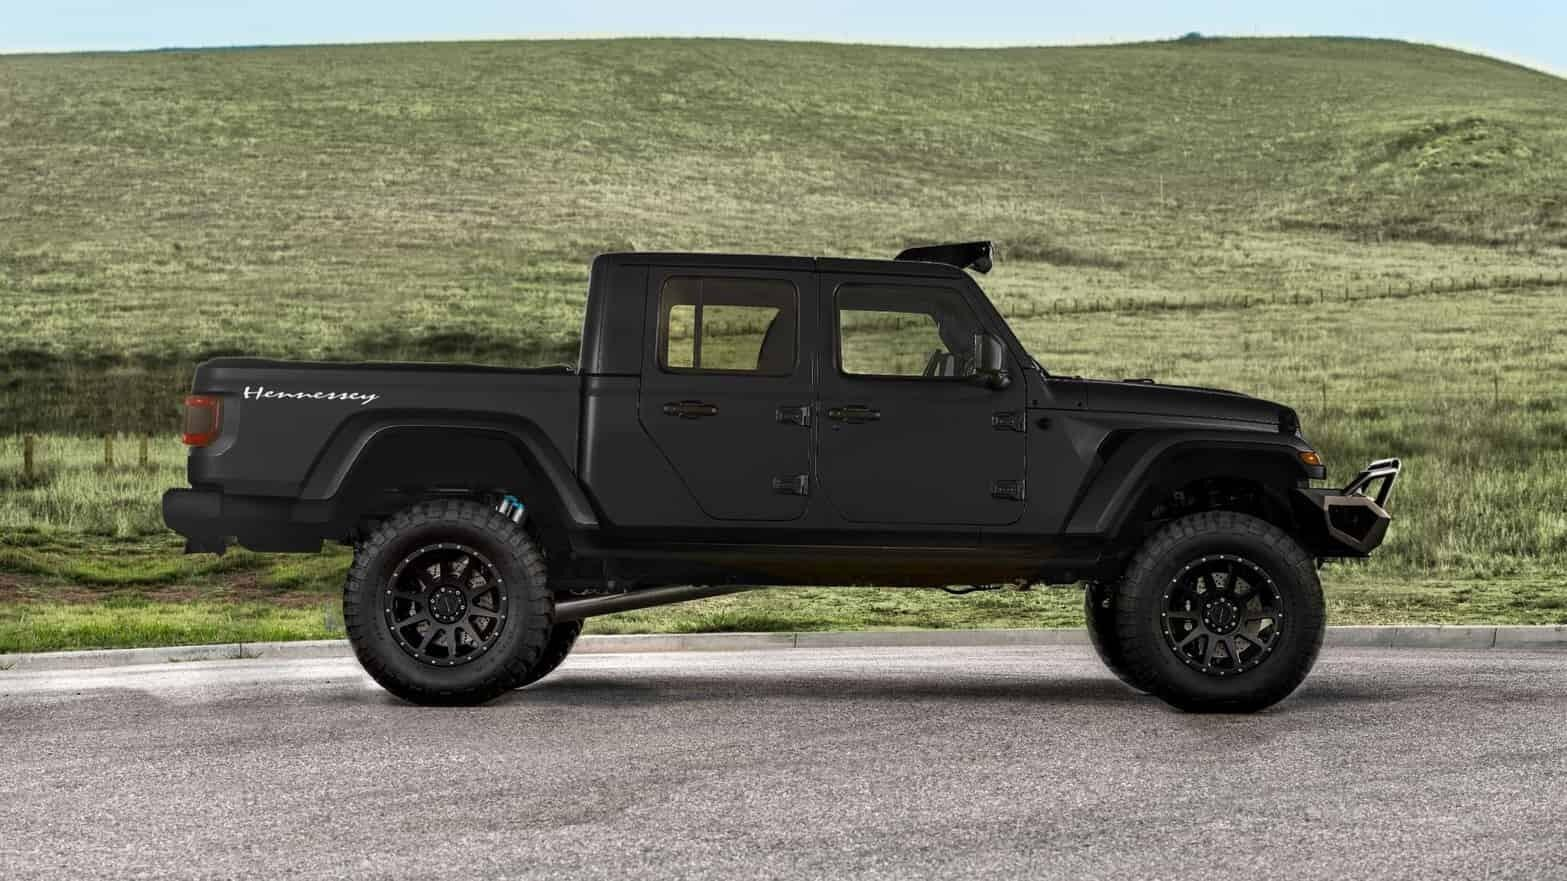 This is Hennessey's 1000bhp Jeep Gladiator